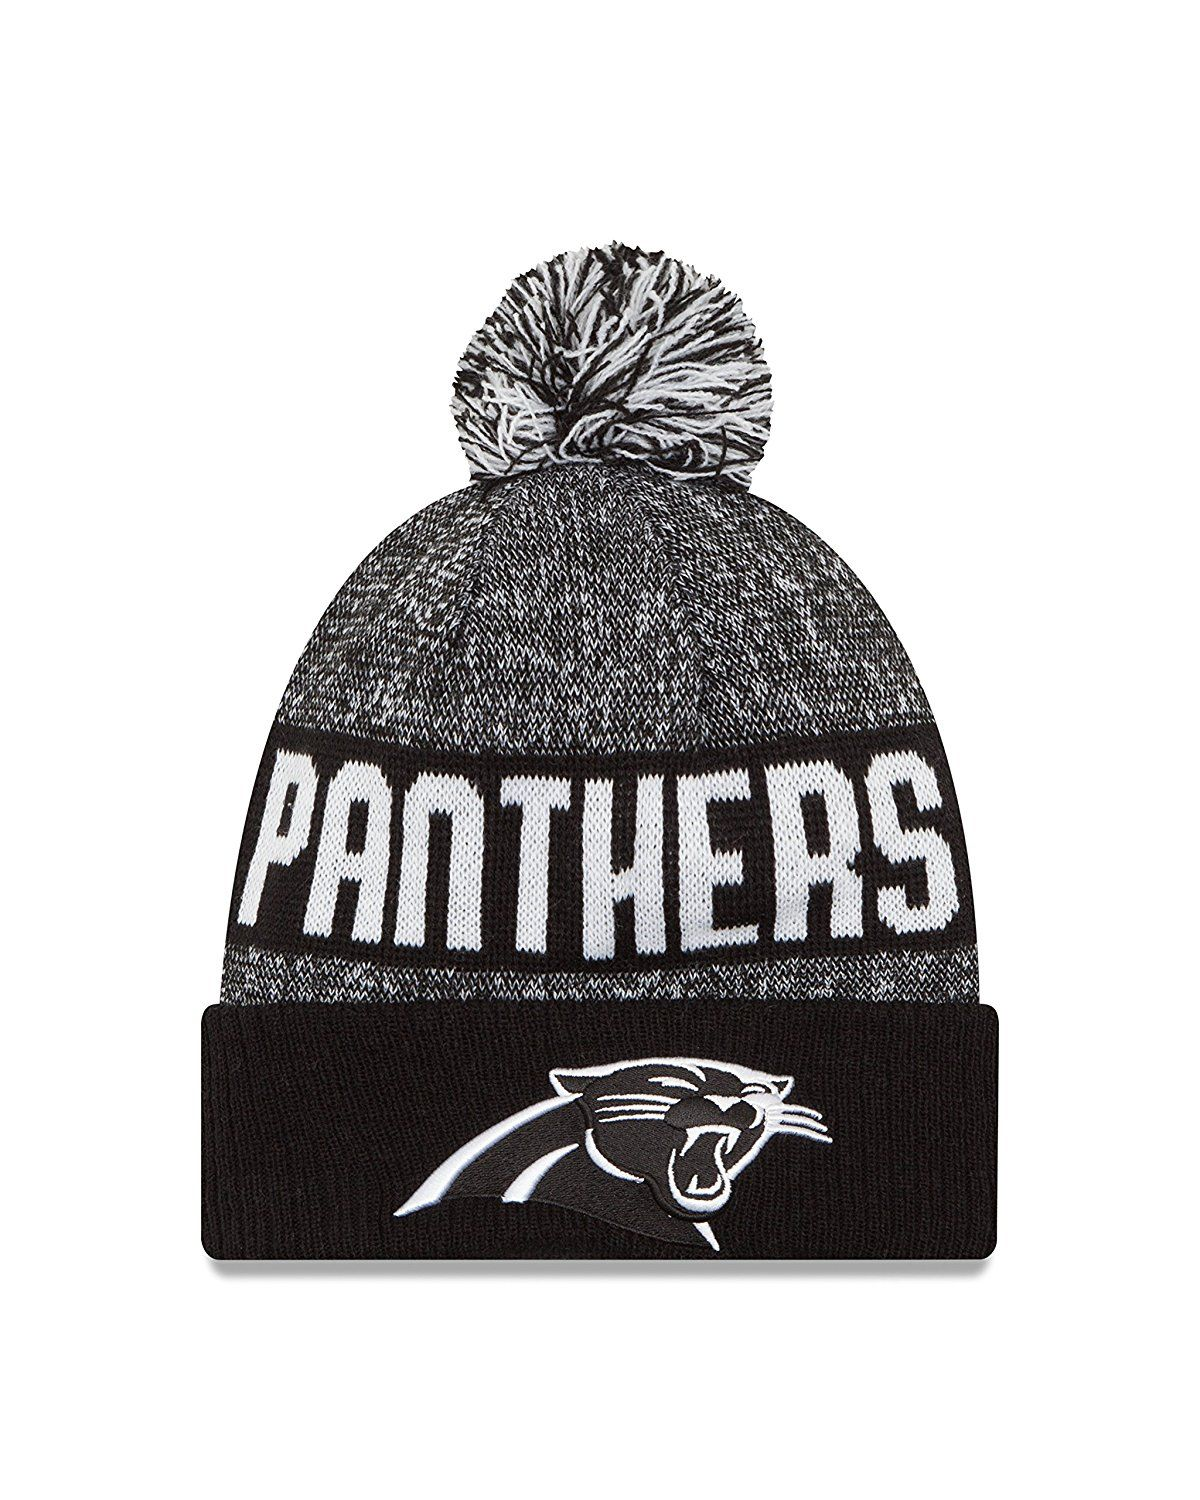 Carolina Panthers NFL Sport Knit Beanie 6fbd83f76